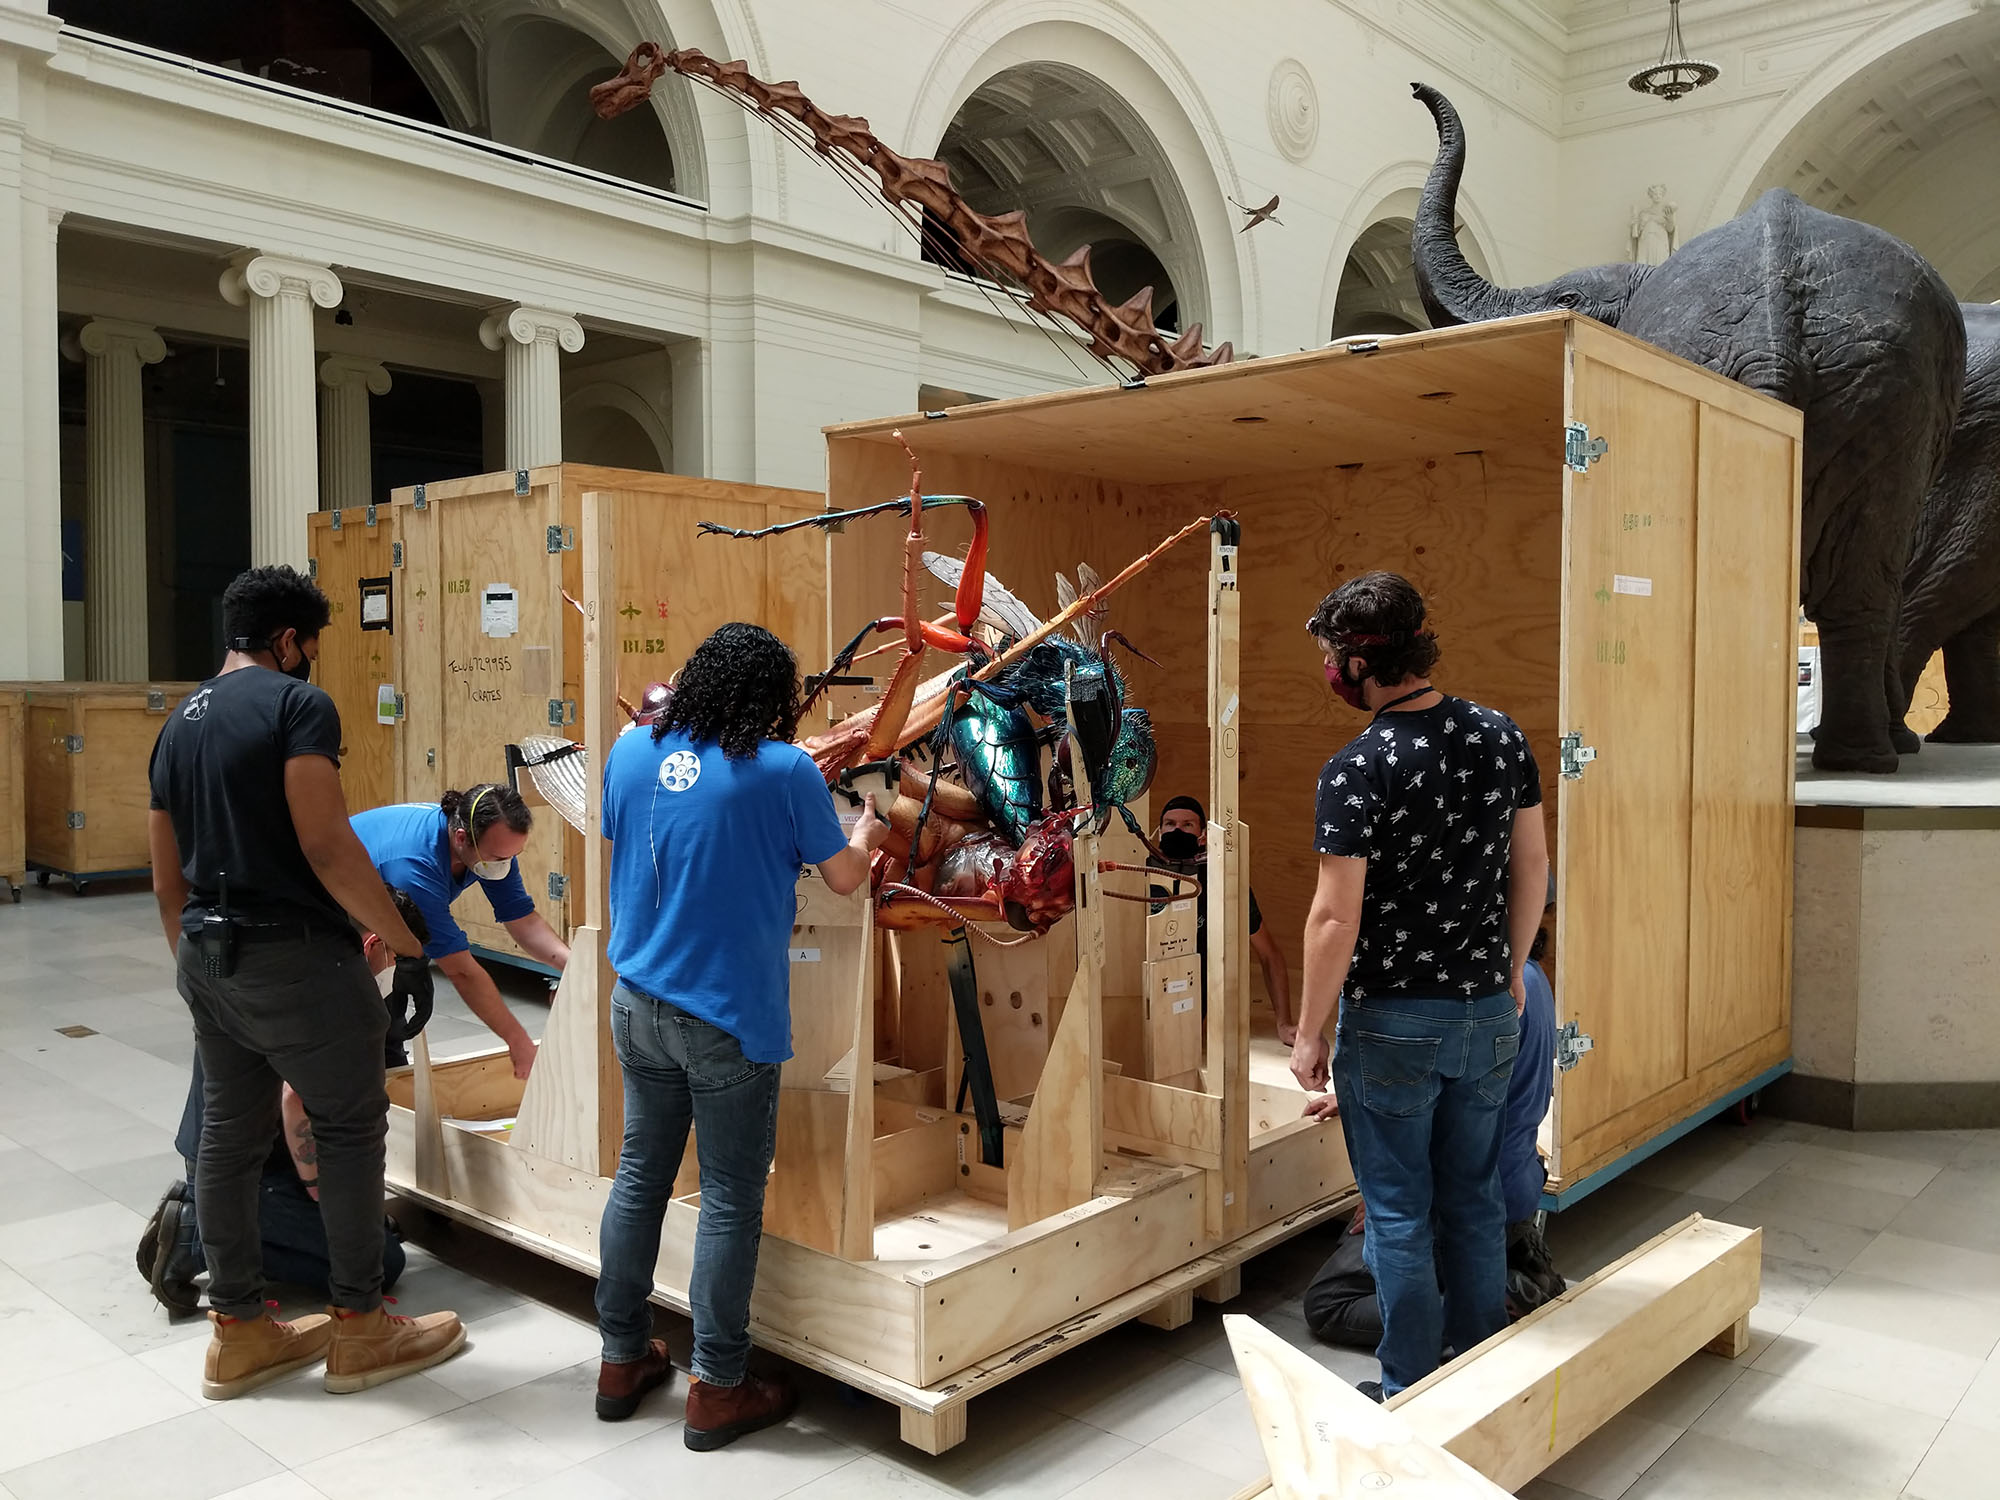 Four men place a large-scale model of two insects into a wooden crate.